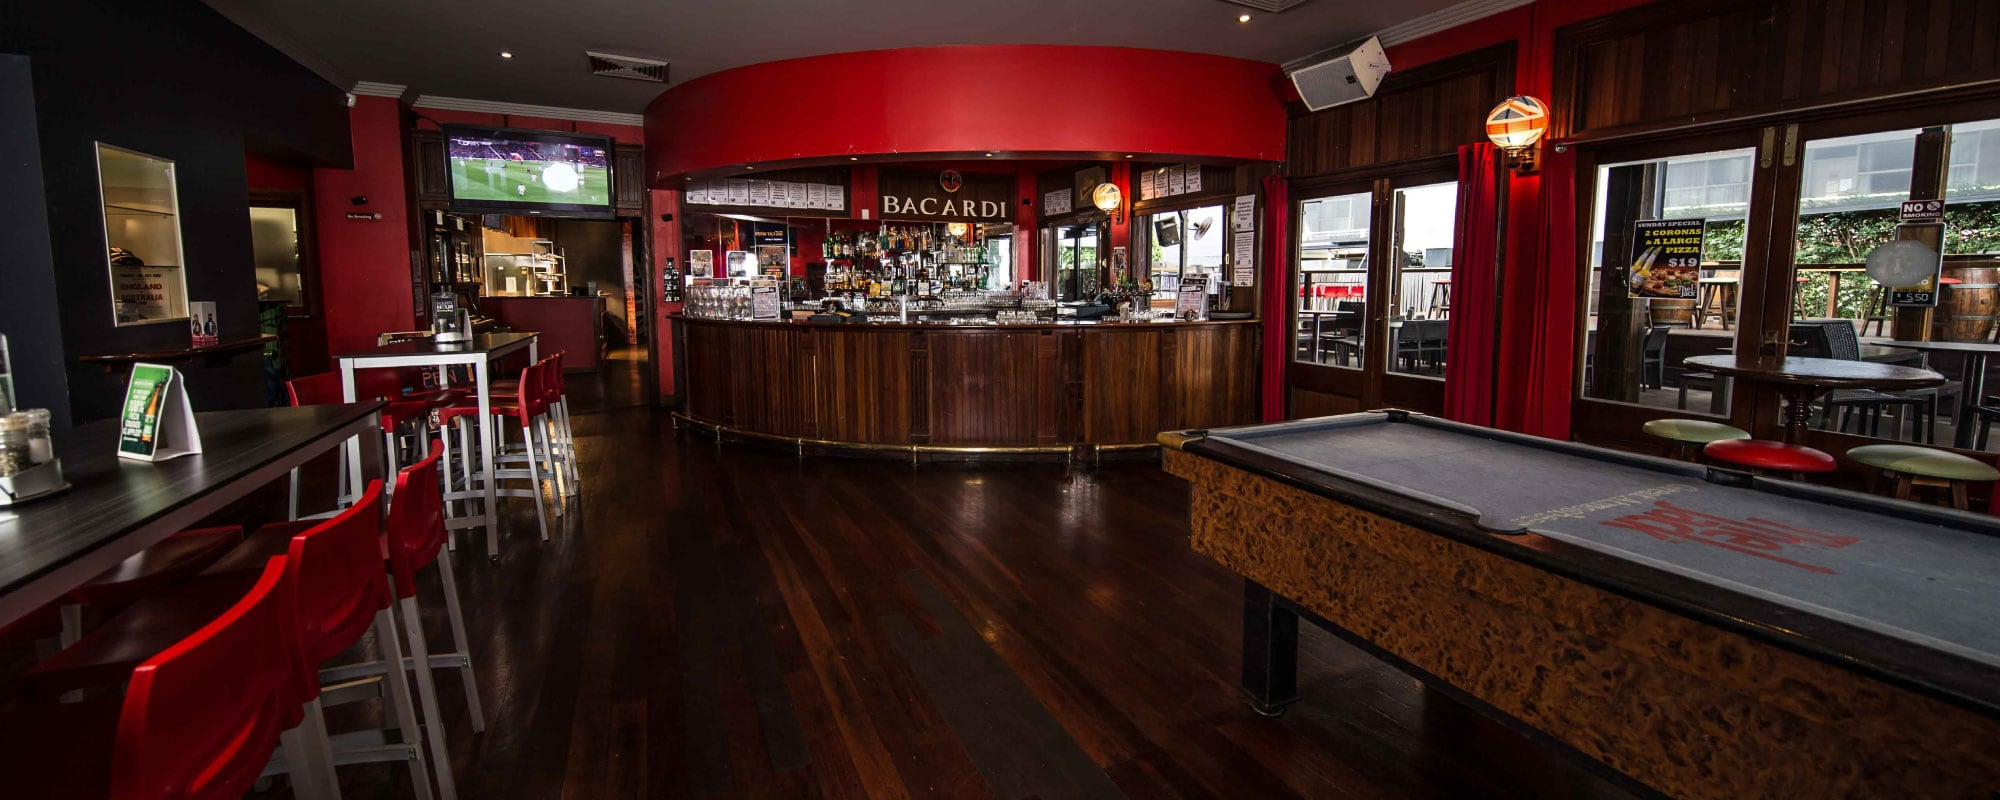 The-jack-cairns-bar-pub-hostel-backpackers